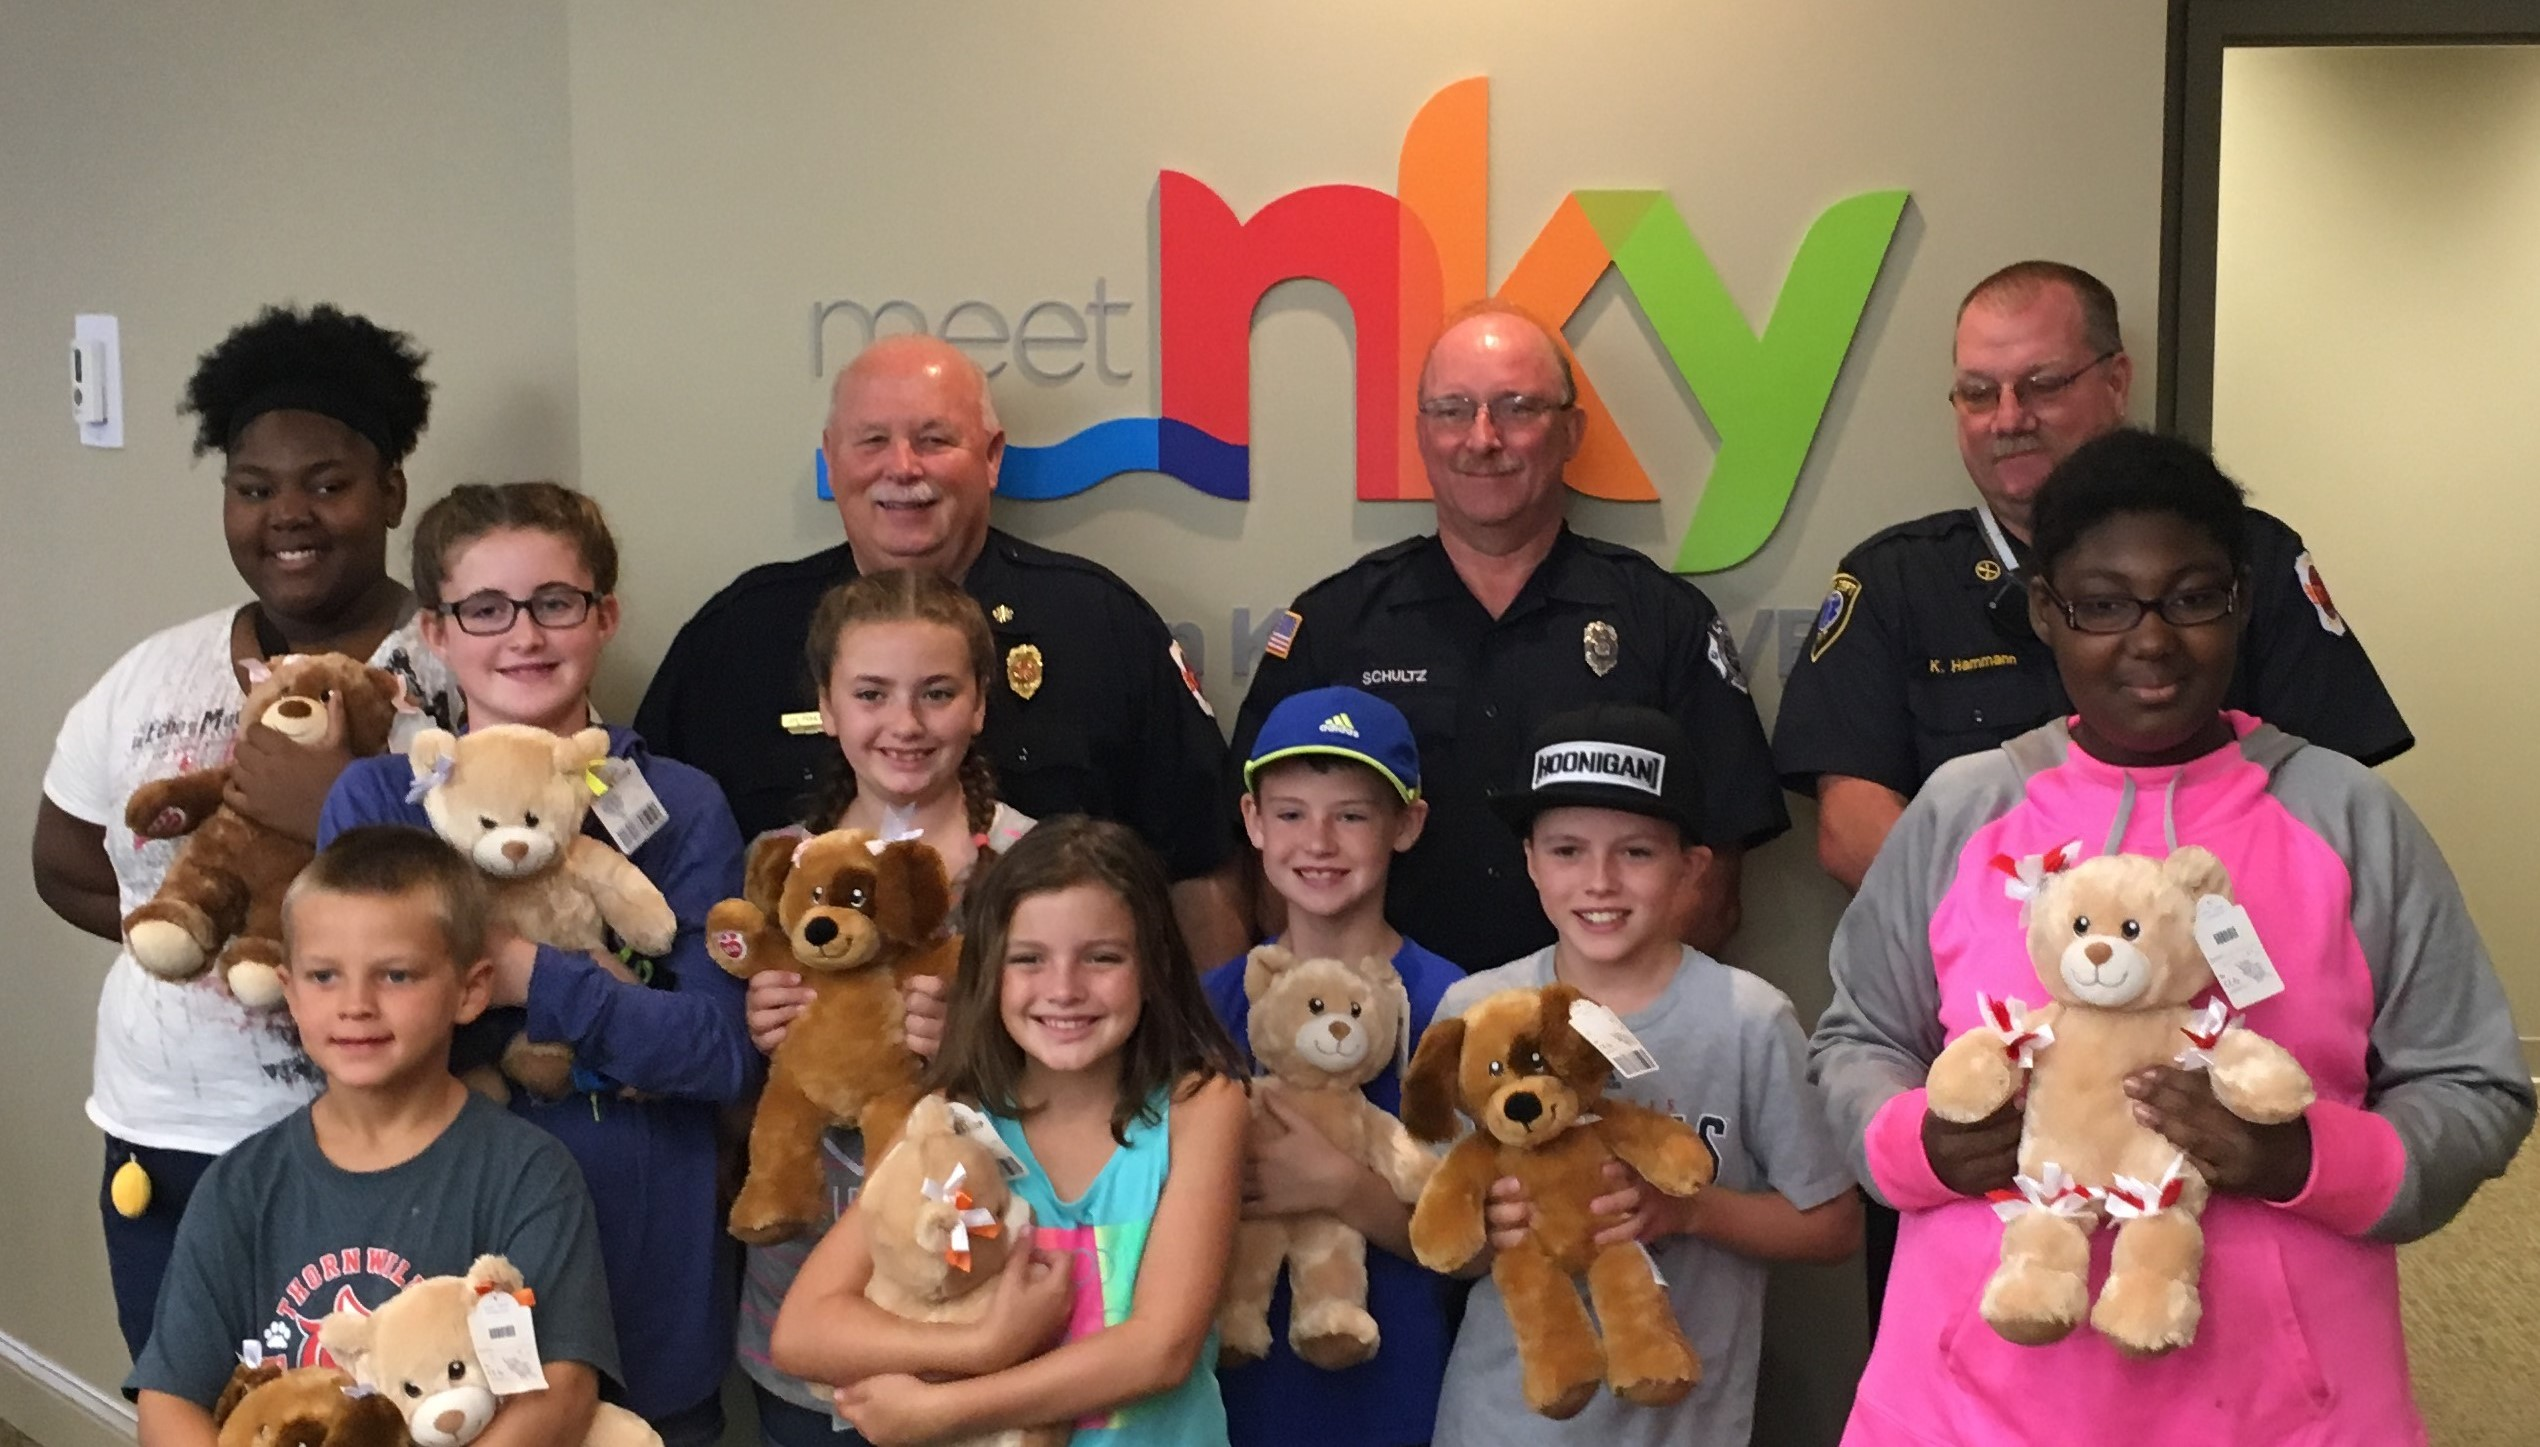 2748d1e7e86 MeetNKY offices transformed into Build-A-Bear workshop to make gifts ...